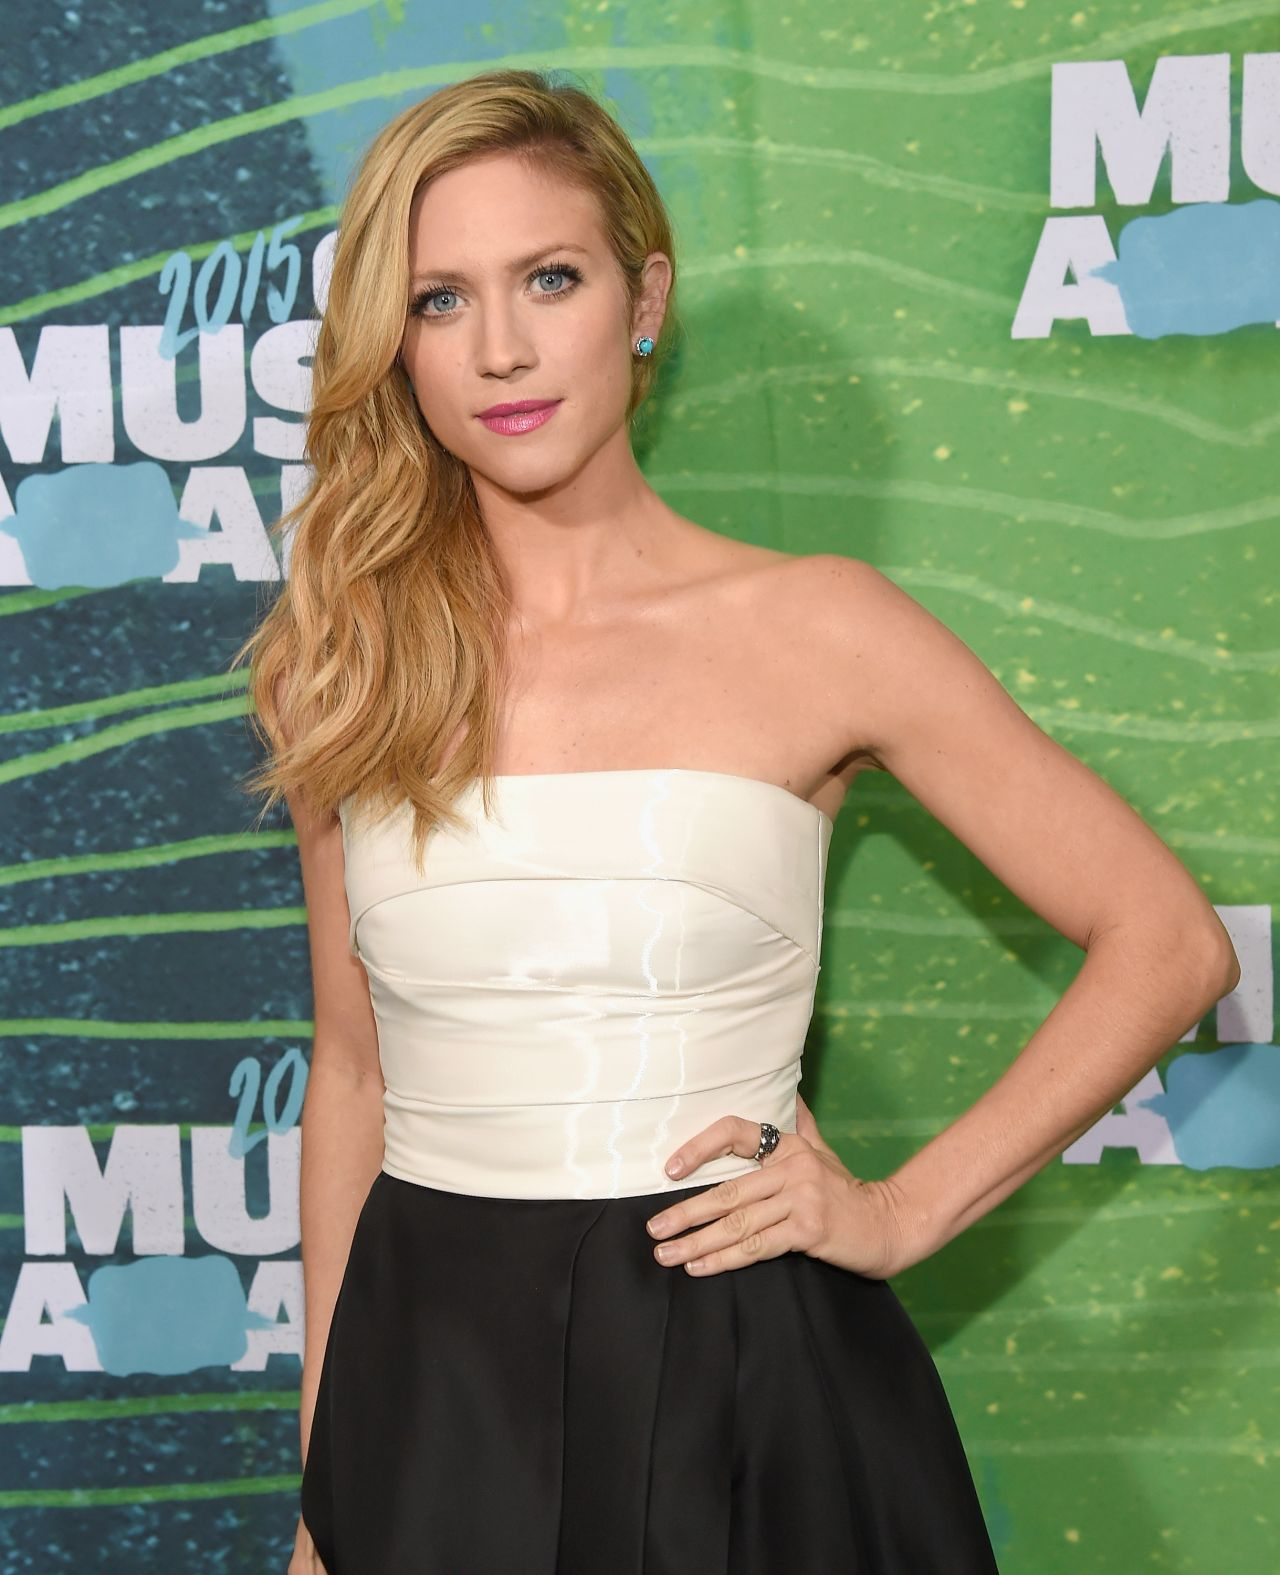 brittany-snow-in-monique-lhuillier-at-the-cmt-music-awards